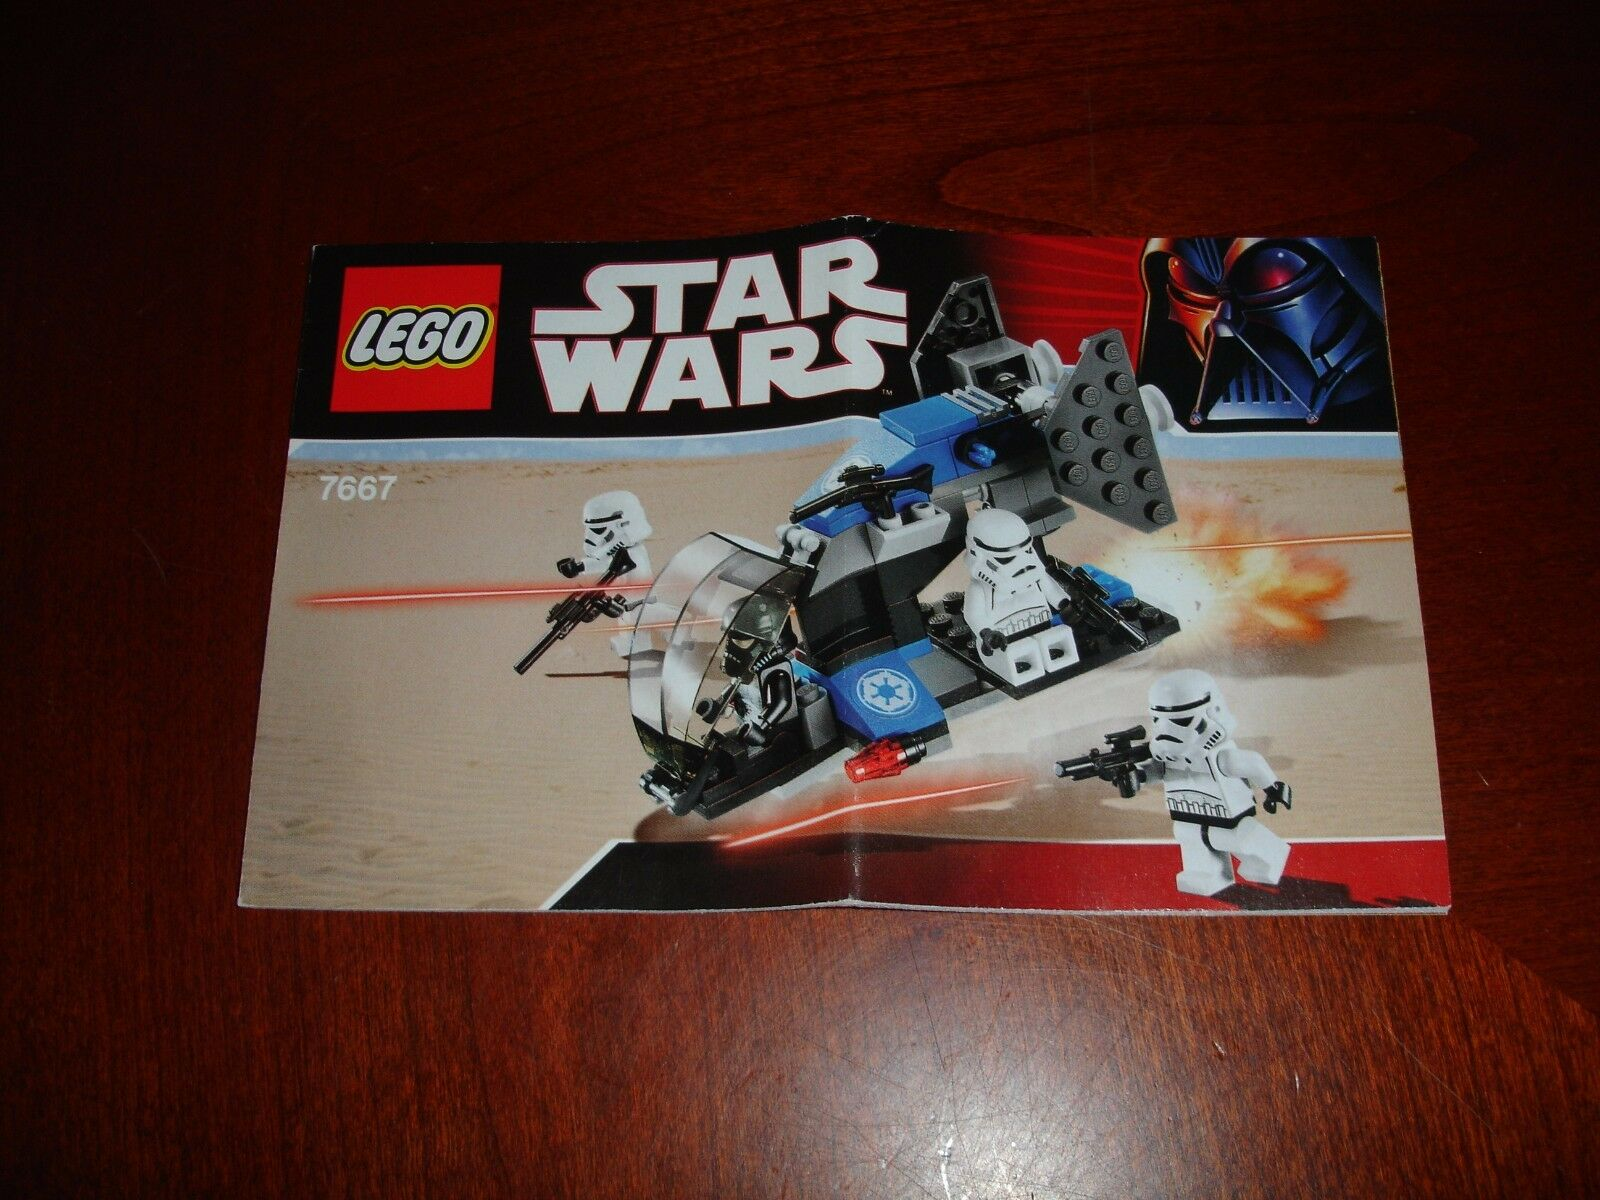 Lego Star Wars 7667 Imperial Dropship Instruction Manual 298